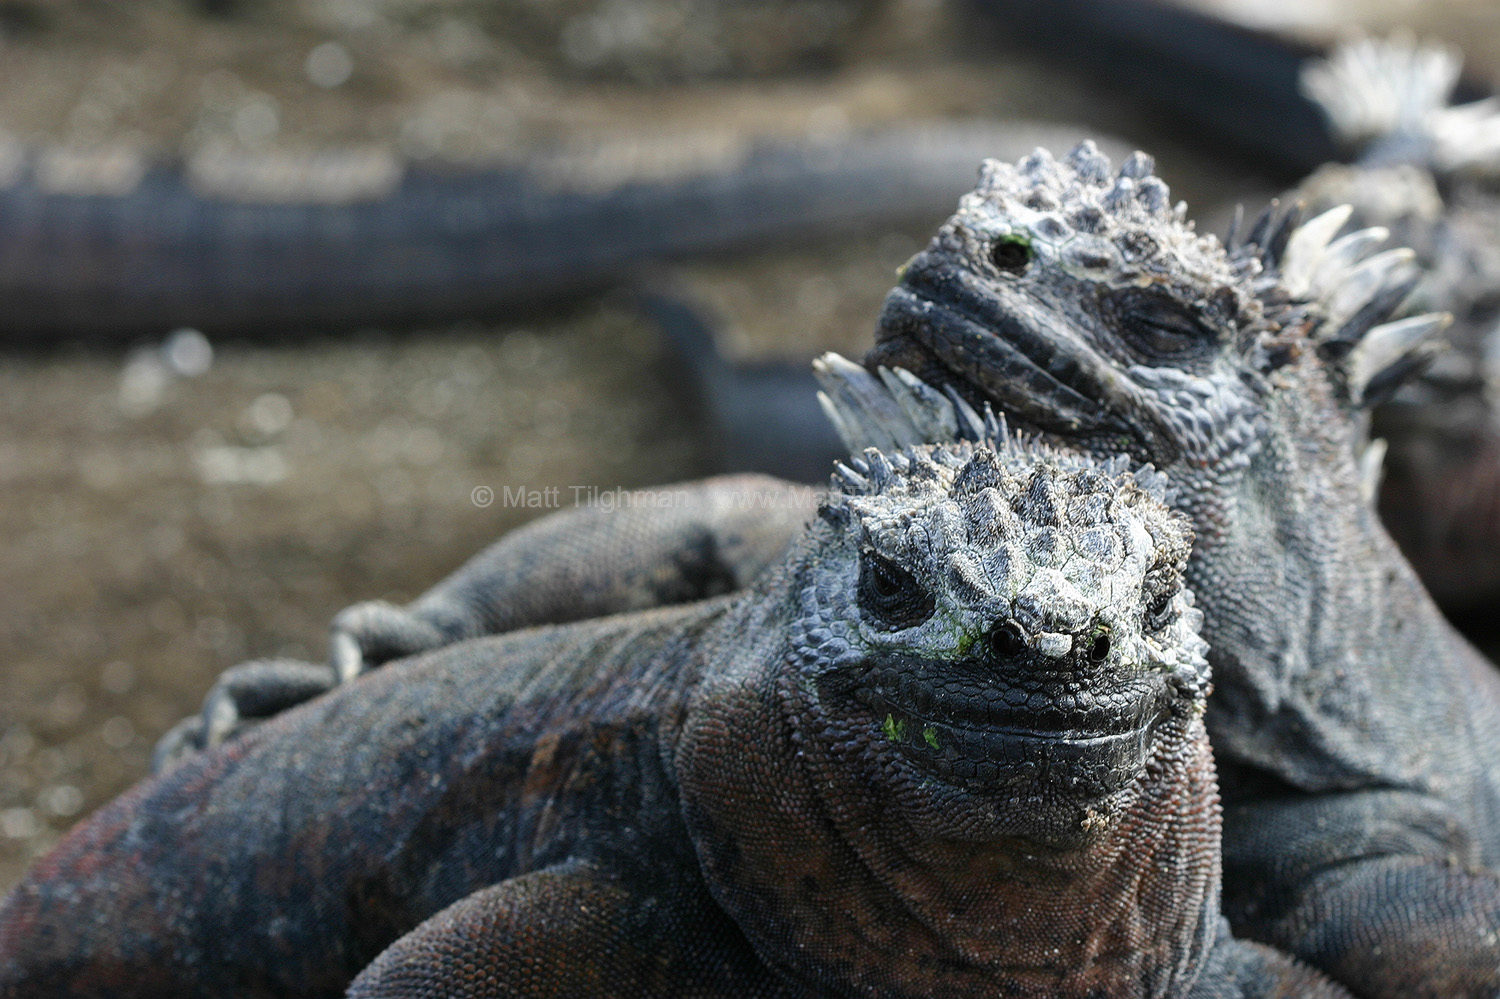 Fine art stock nature photograph of two cozy Marine Iguanas on the Galapagos Islands, recycling valuable body heat among friends.